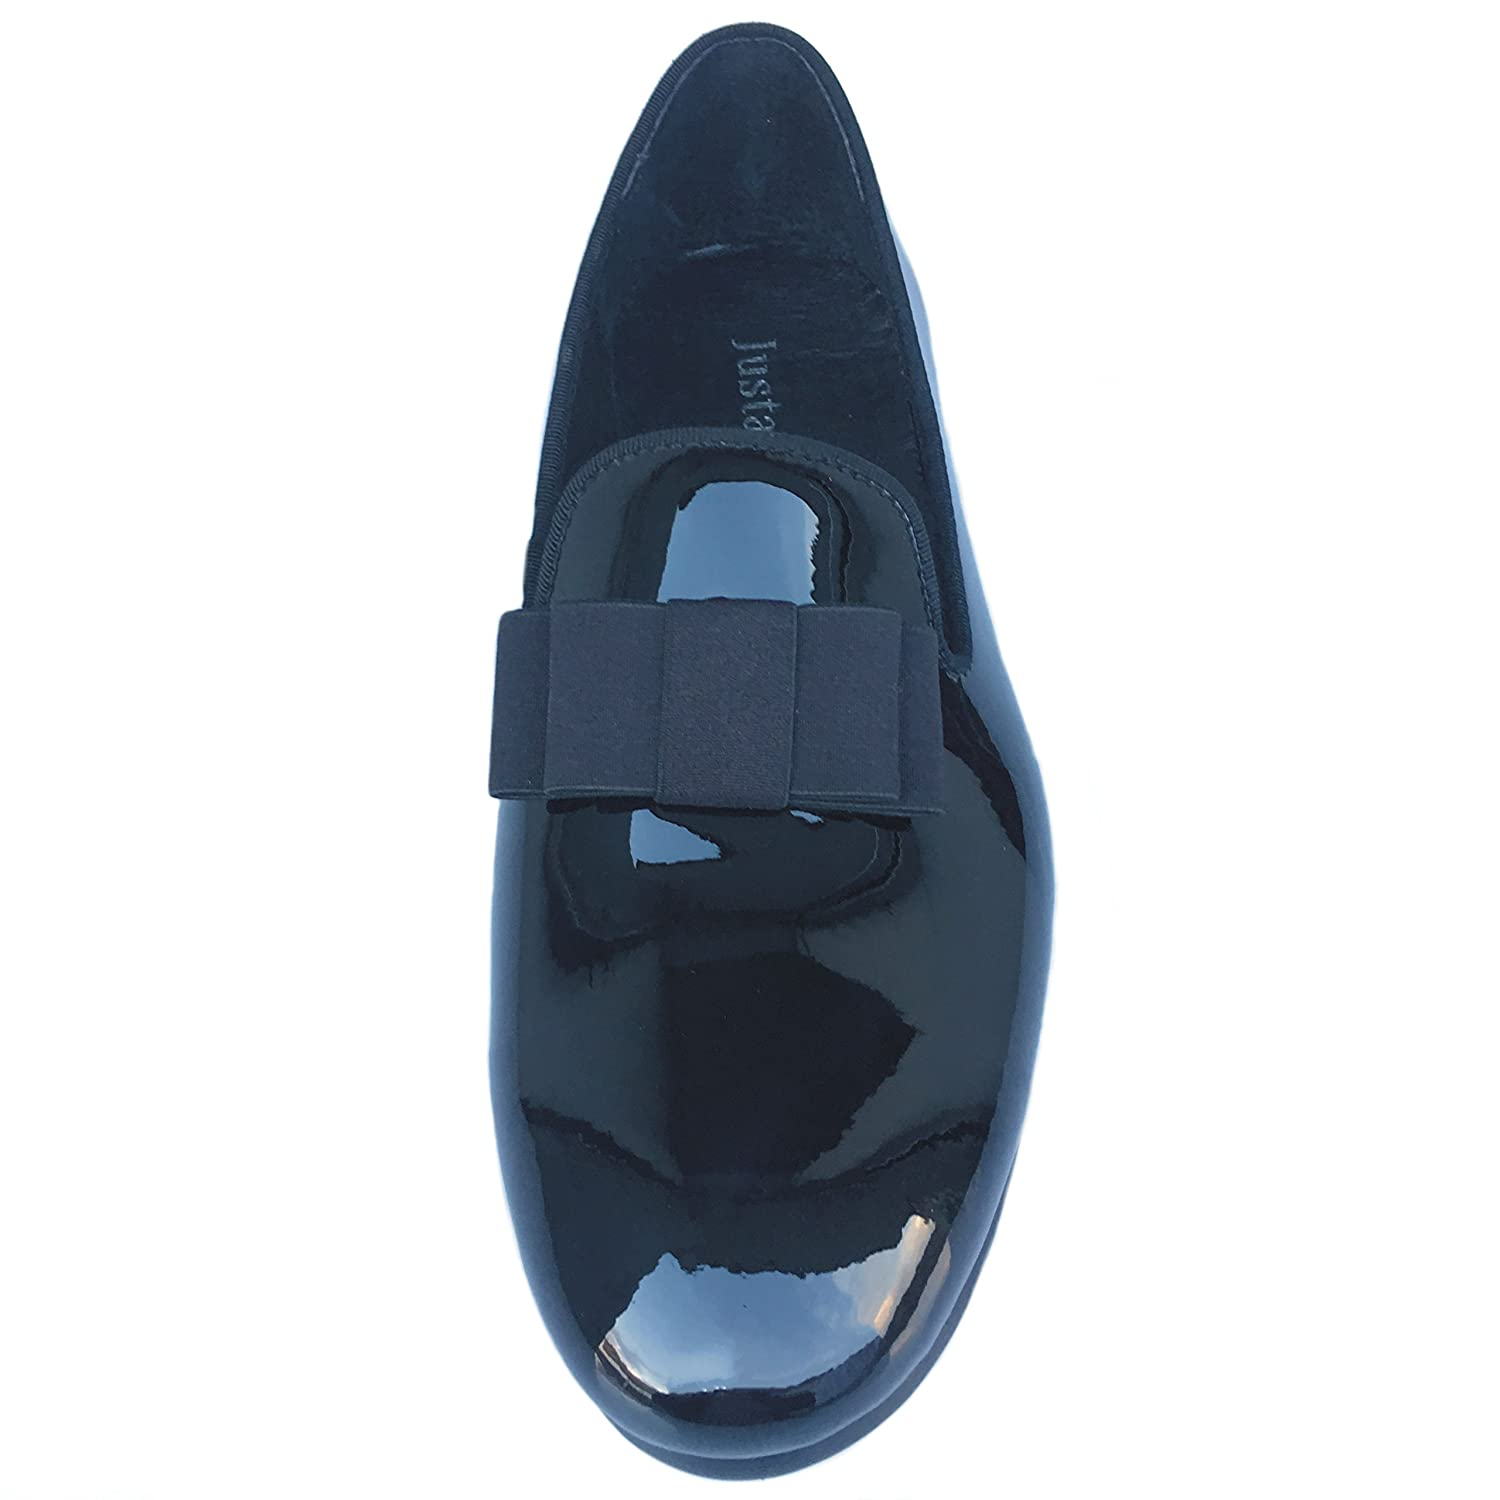 c8657dea723a6 Justar Men's Black Patent Leather Loafers Prom Dress Shoes Tuxedo Bowtie  Slip on Smoking Slippers Flats